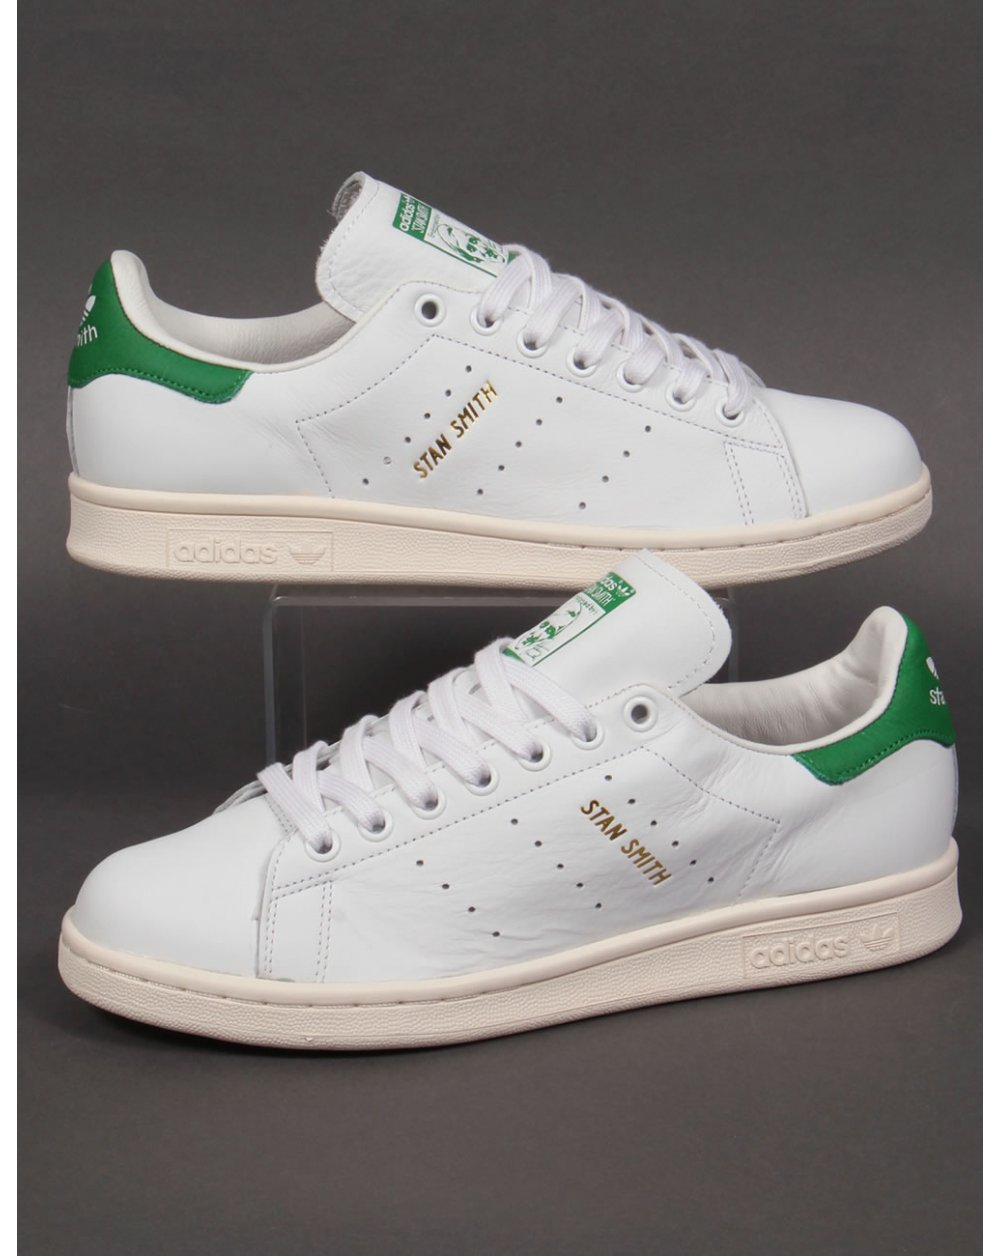 d79c9c9d1eacd8 adidas Trainers Adidas Stan Smith Trainers White green gold